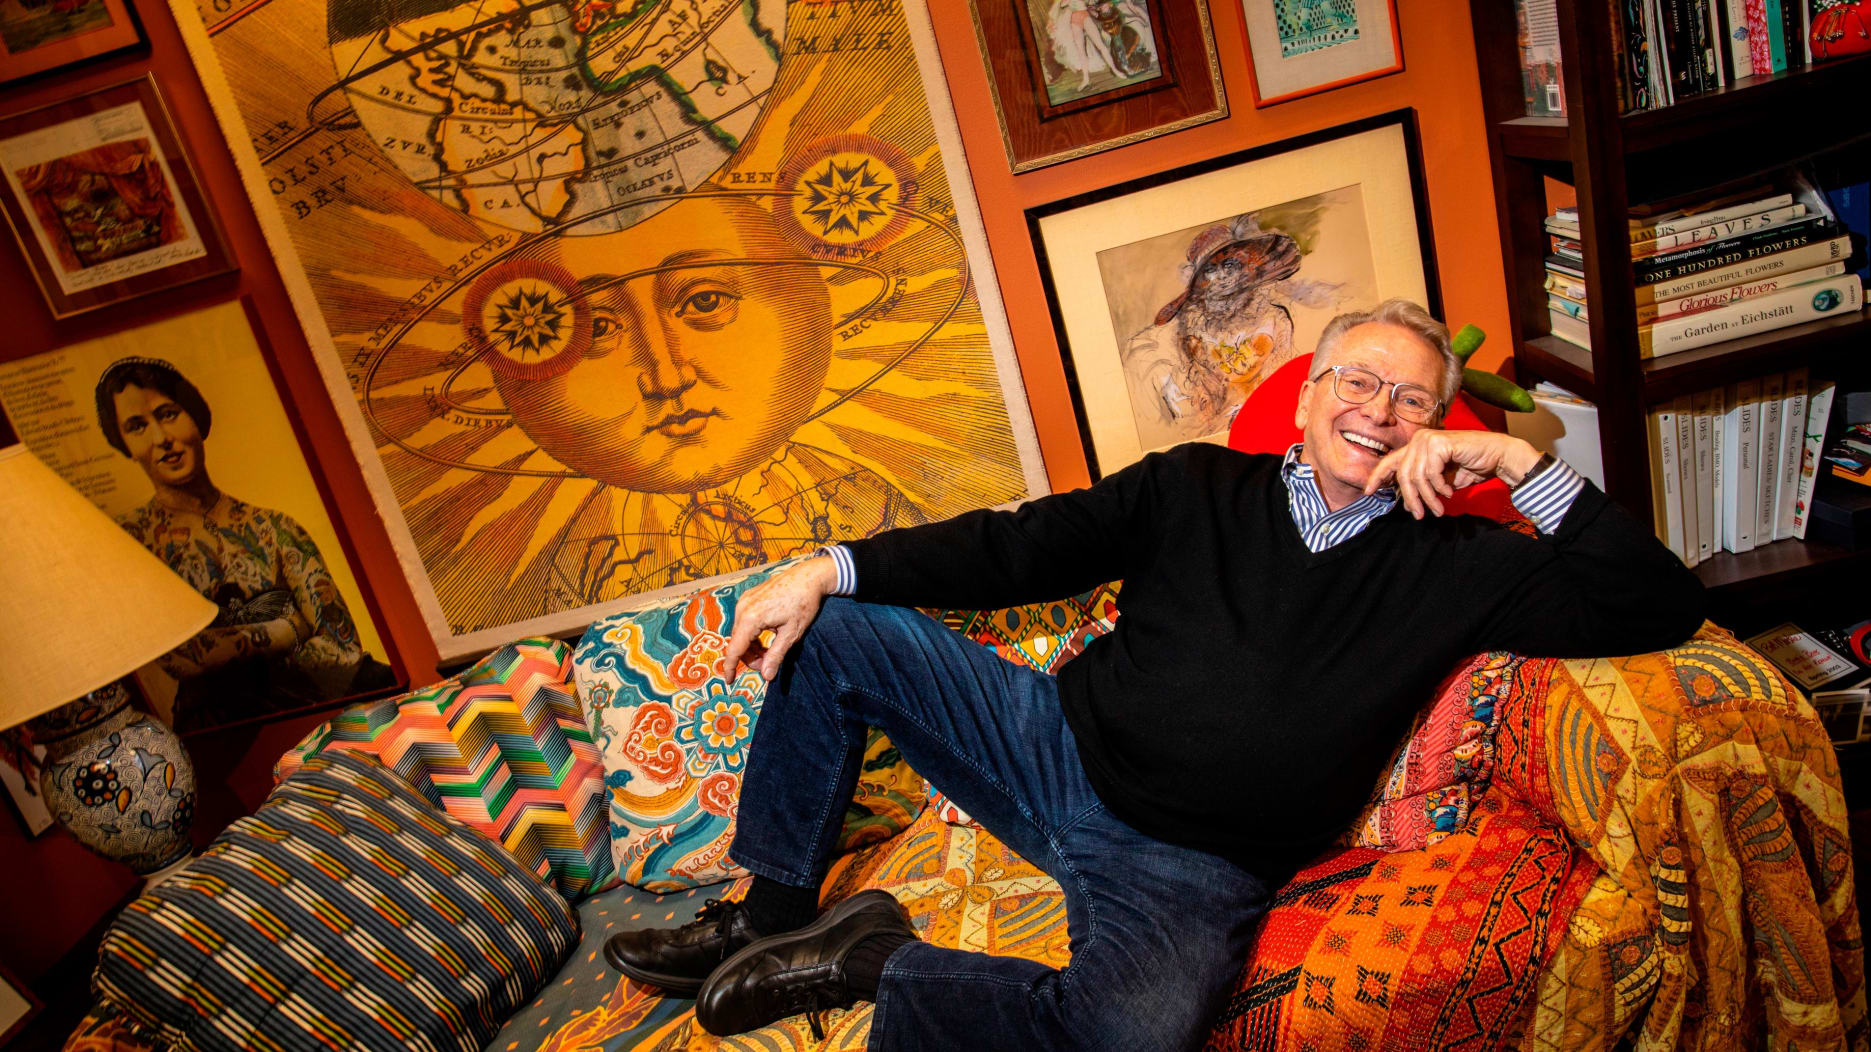 """LOS ANGELES, CA - MAY 17: Renowned costume and fashion designer and nine-time Emmy winner, Bob Mackie, is photographed in his Los Angeles, CA, office, May 17, 2019. In addition to a 2019 Tony nomination for his work on """"The Cher Show"""" musical, Mackie is set to receive the Geoffrey Beene Lifetime Achievement Award from the Council of Fashion Designers of America, Inc. (CFDA). (Jay L. Clendenin/Los Angeles Times via Getty Images)"""